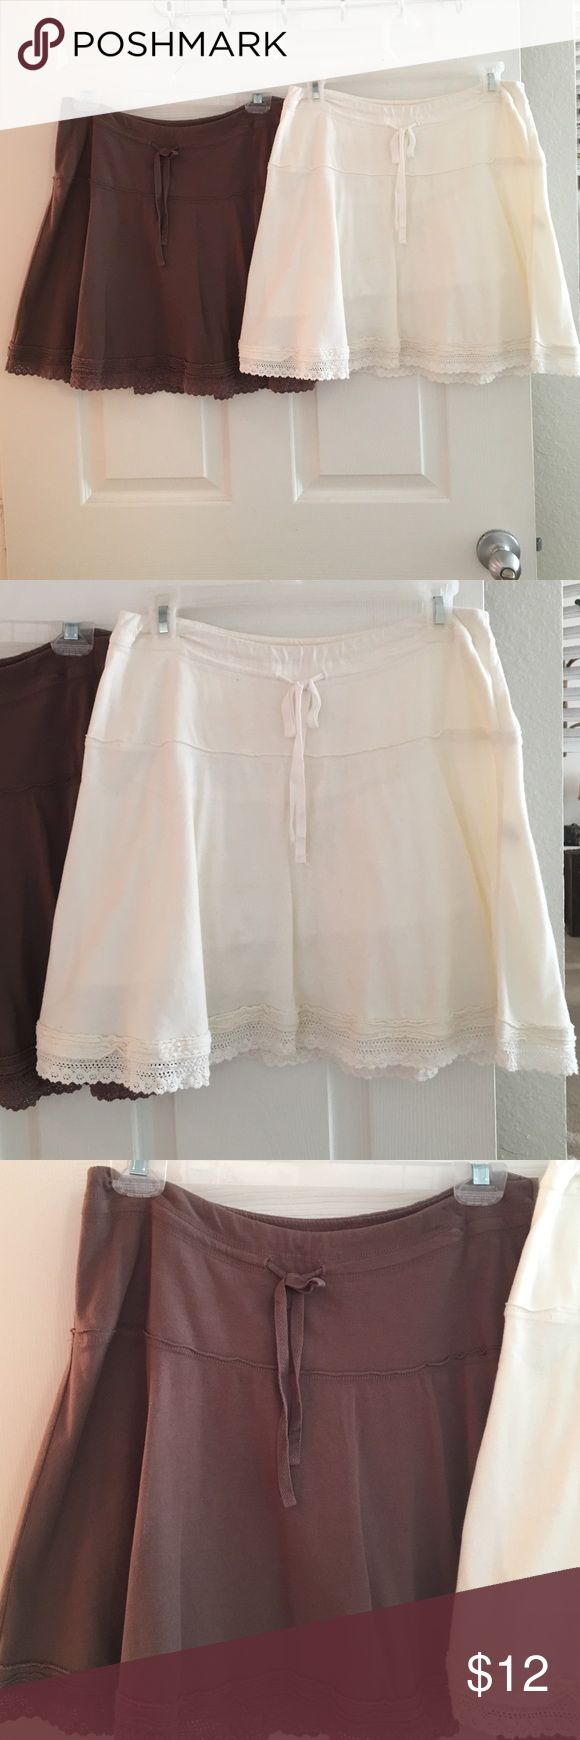 Abercrombie and Fitch women's skirts size small Smoke free/pet free home. You get both skirts for one price. These skirts come just above the knee. One is white and one is brown. Both are Abercrombie and Fitch size small. Abercrombie & Fitch Skirts